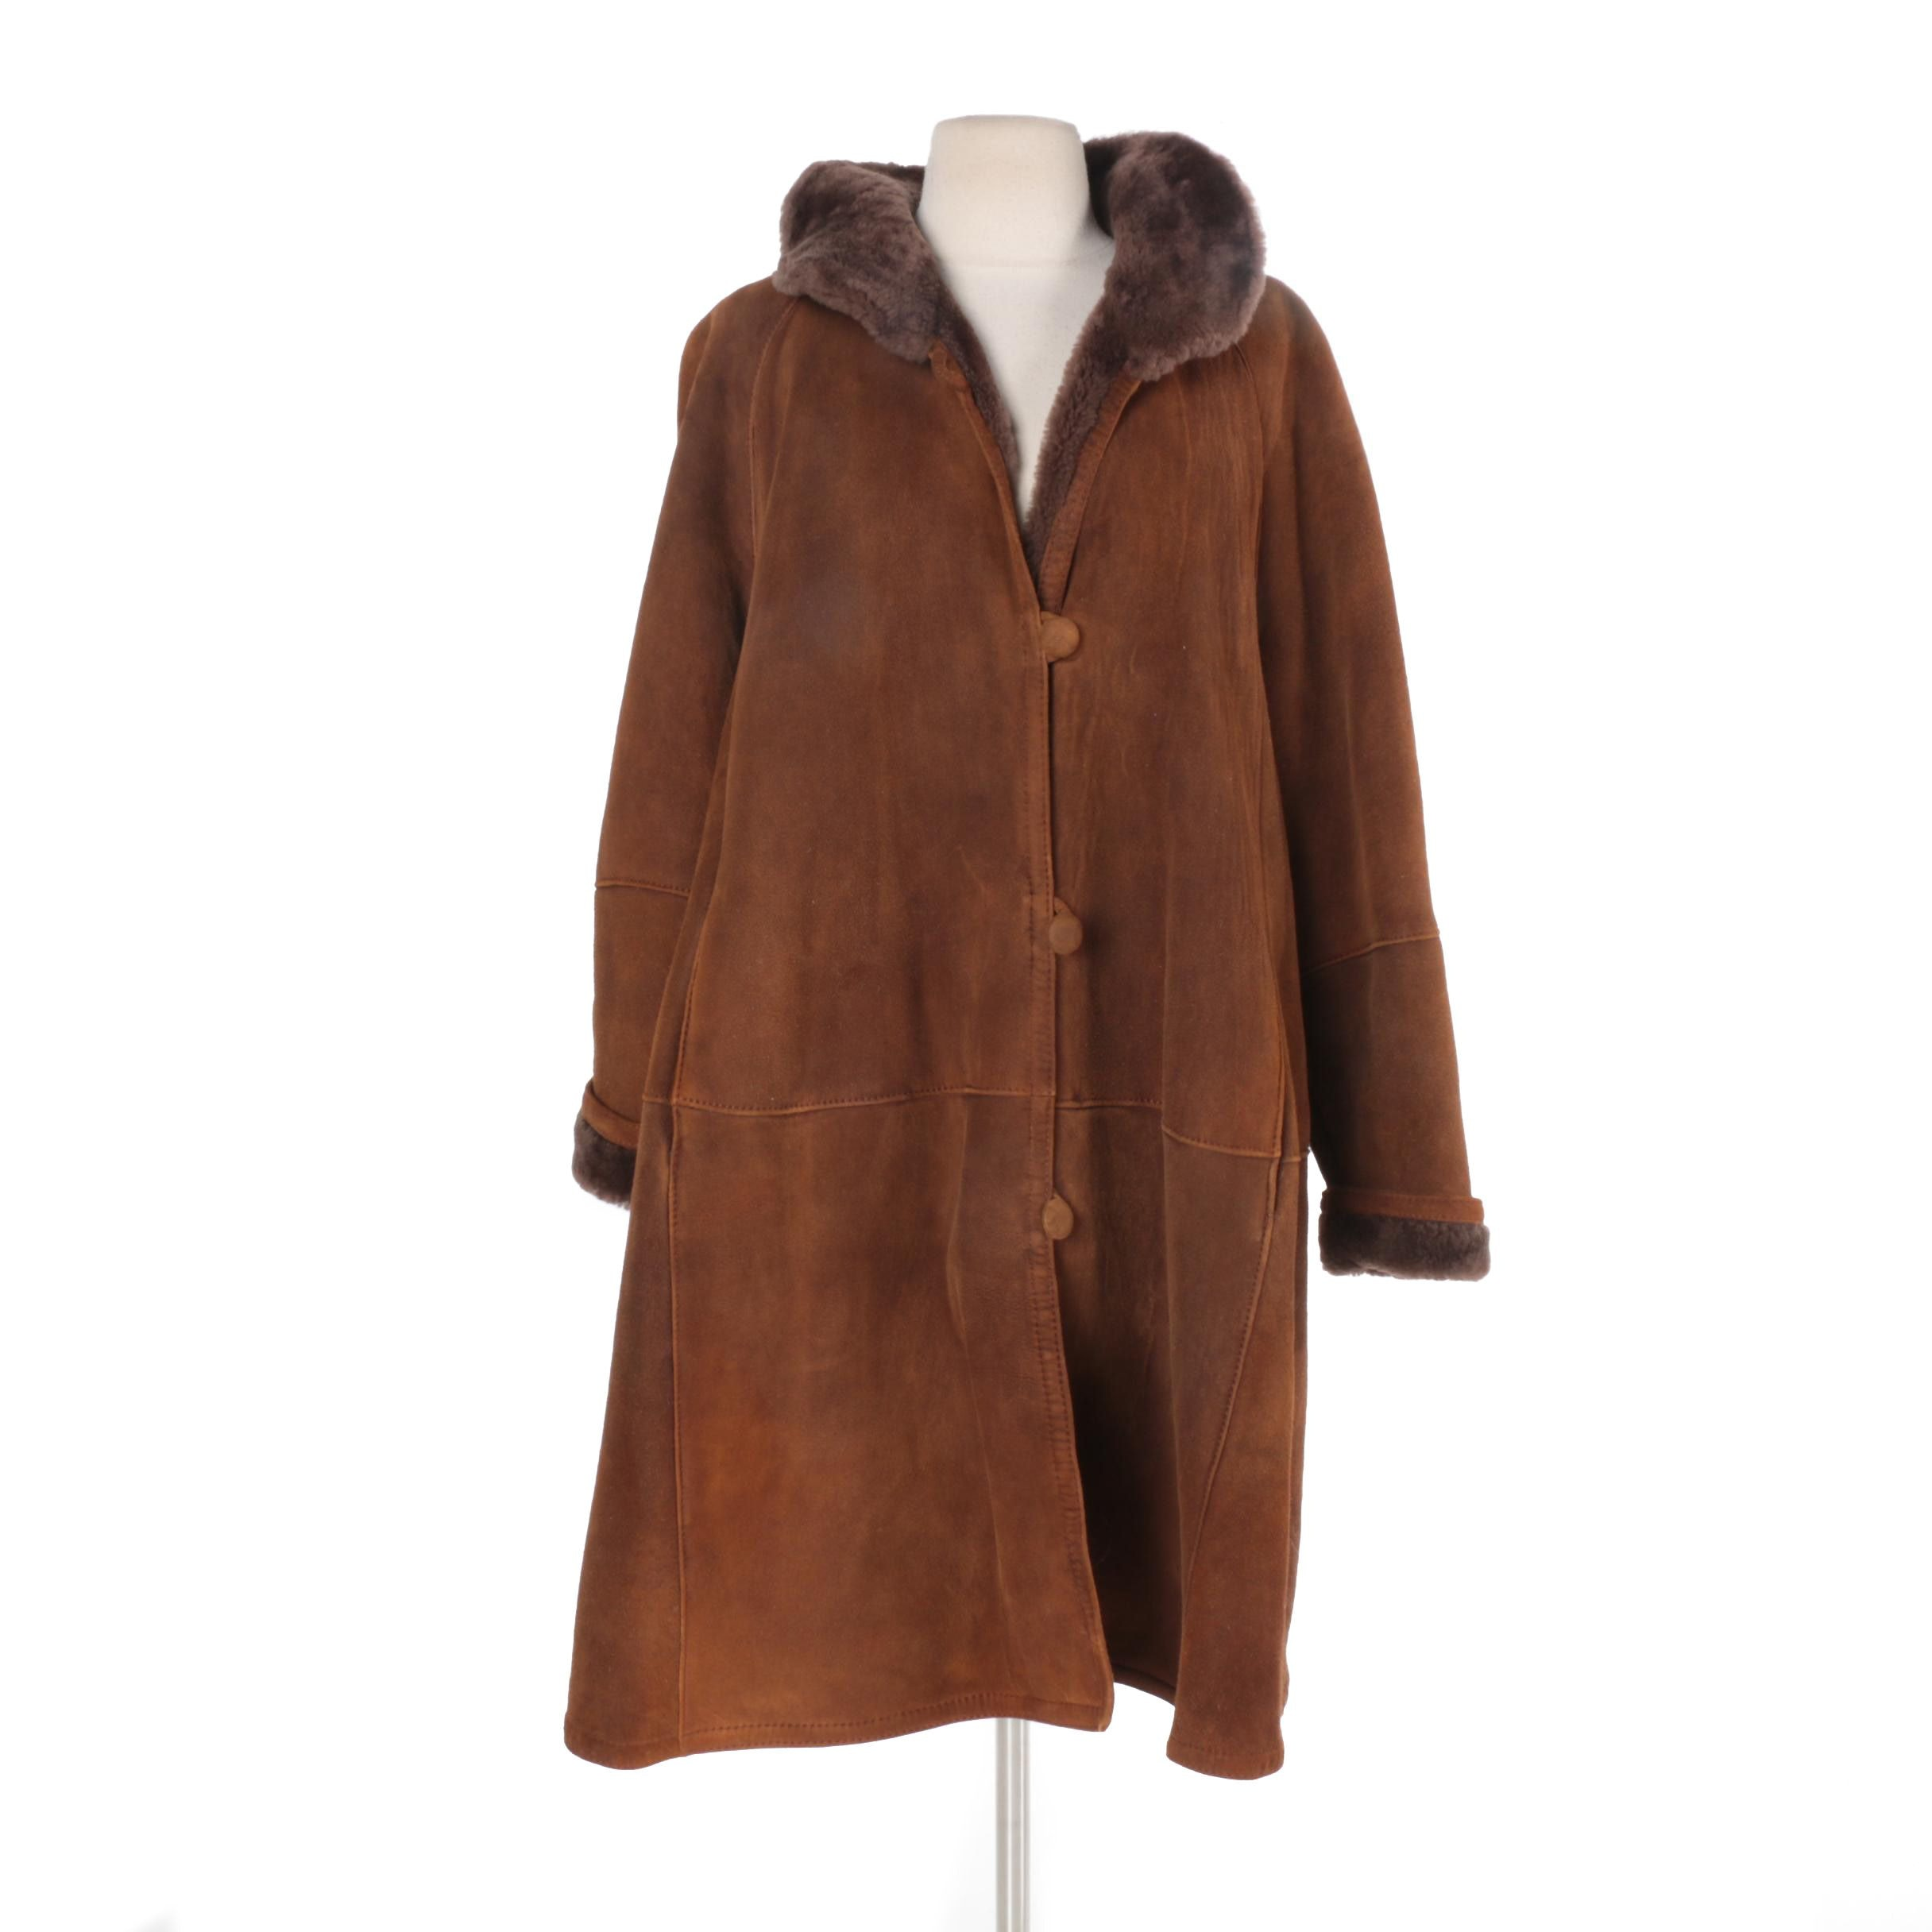 Women's Suede and Faux Shearling Coat